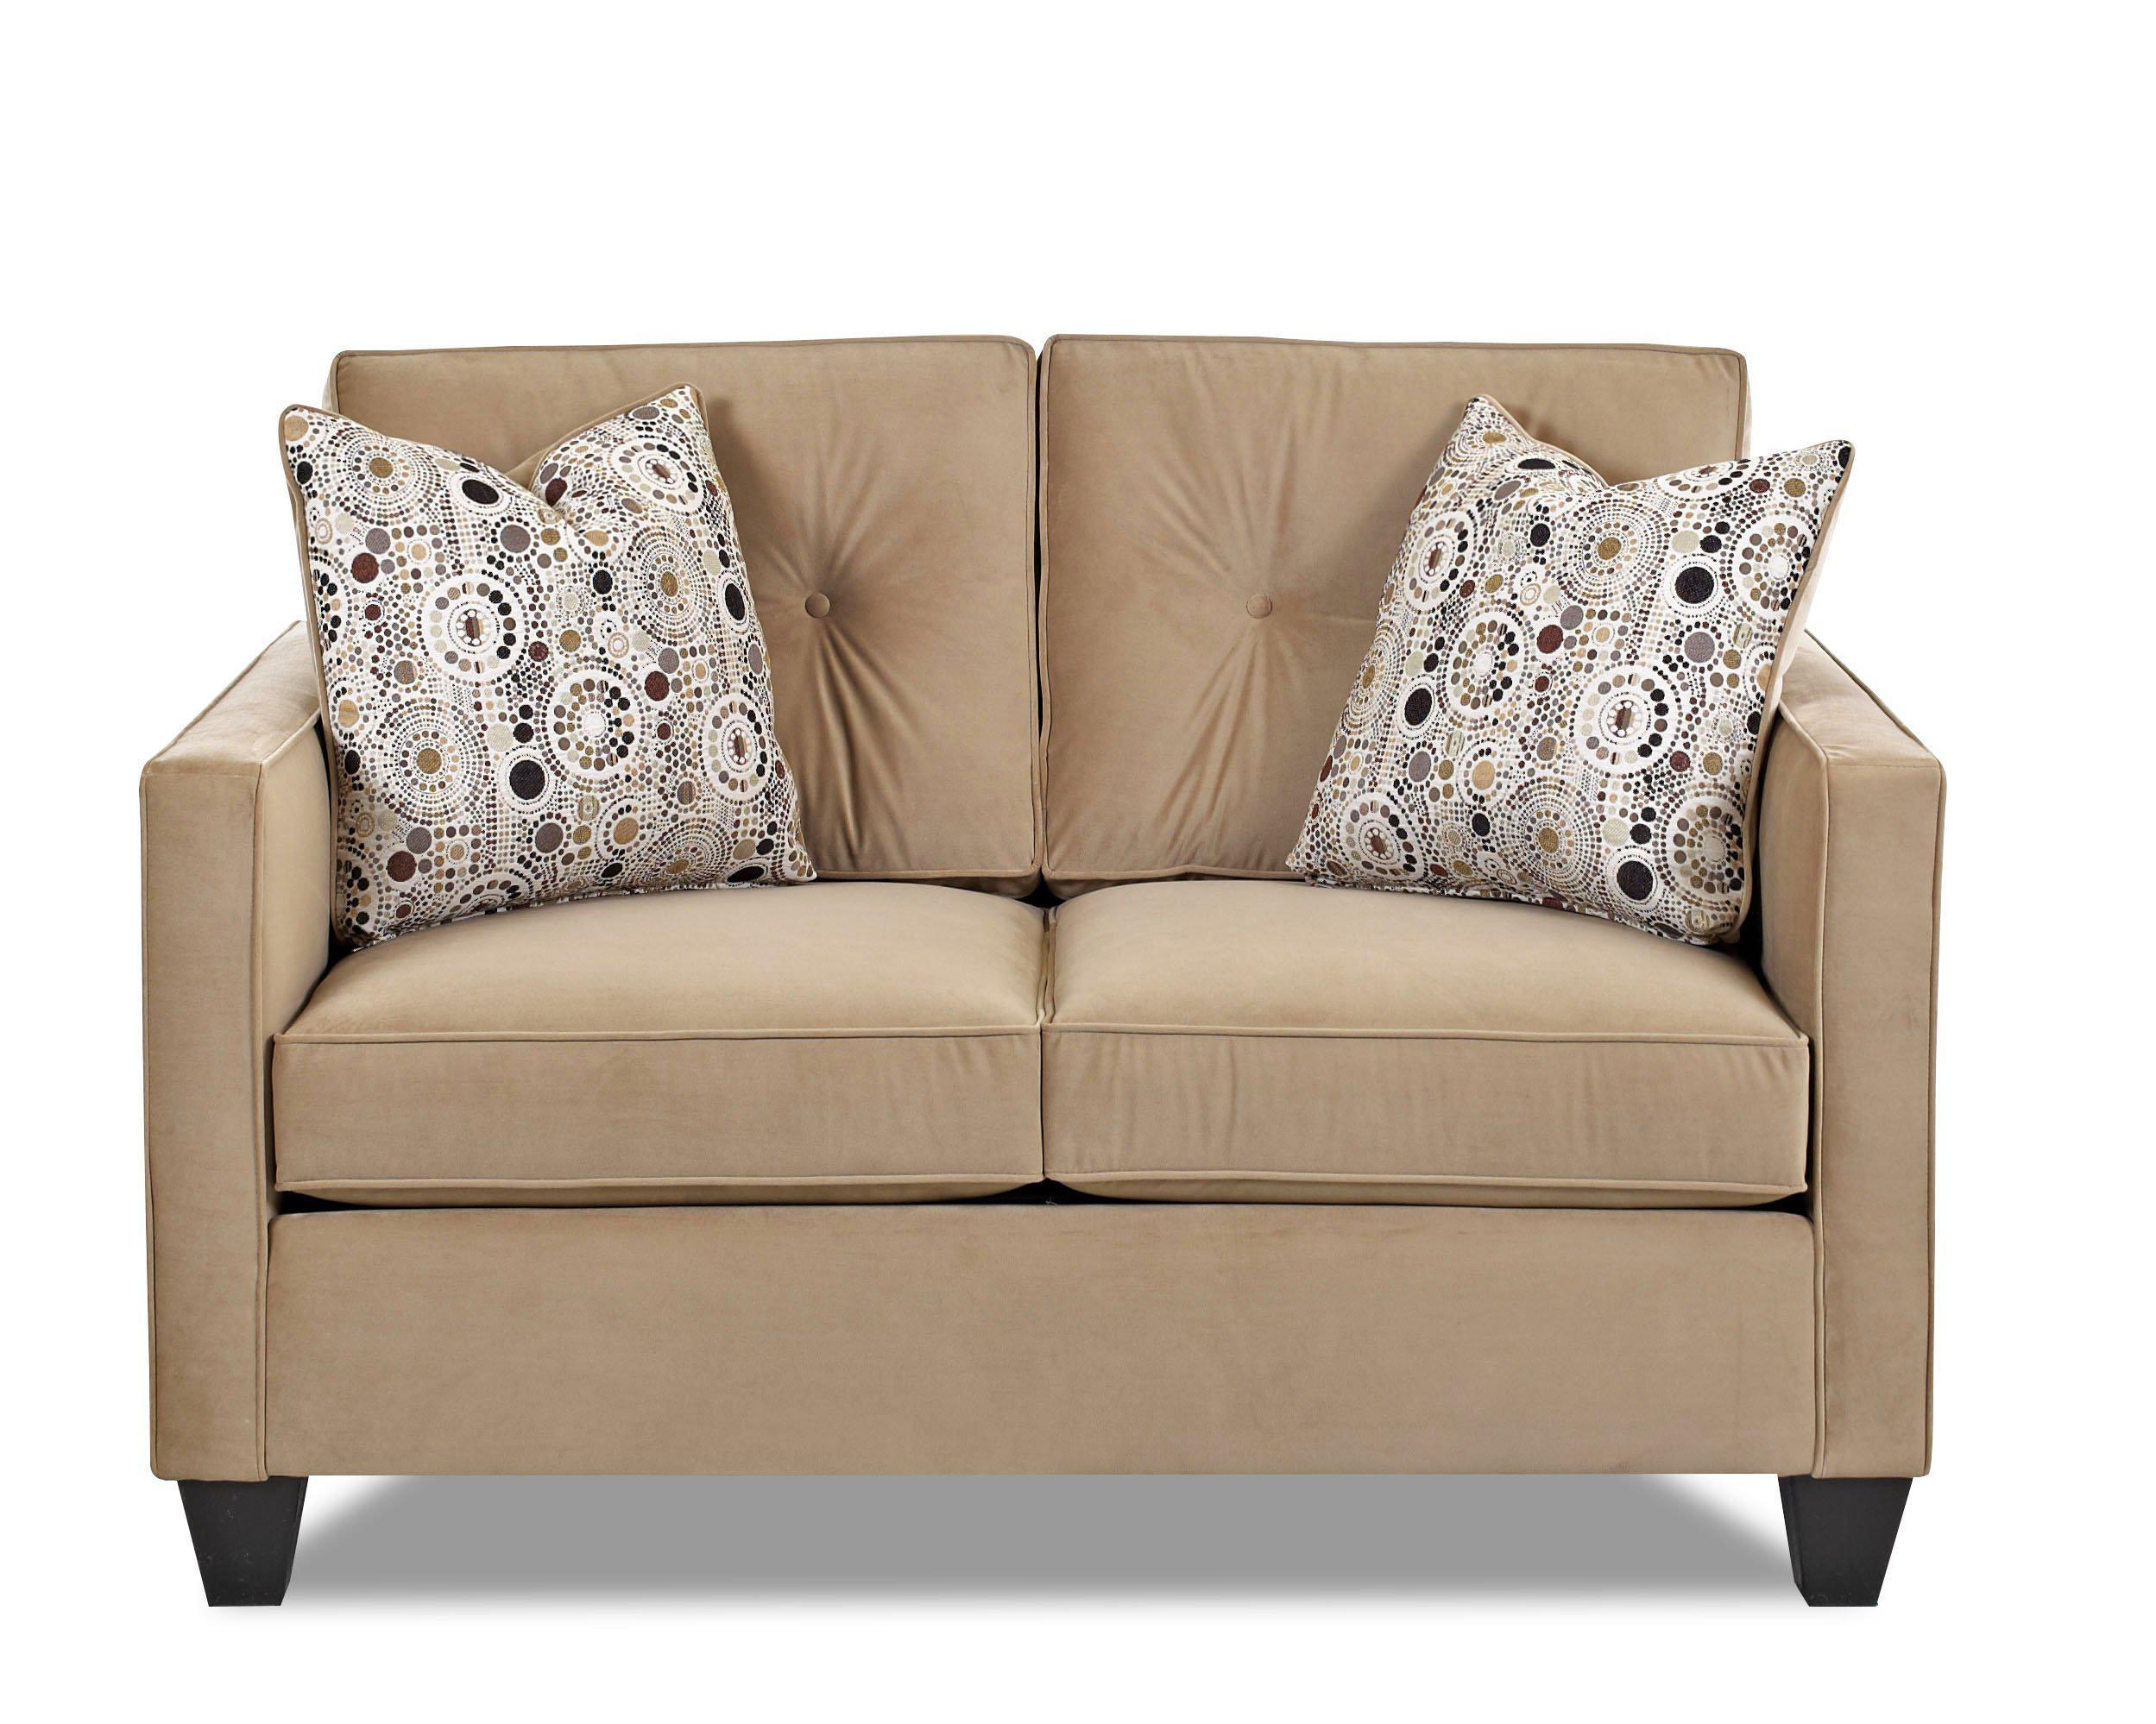 Kate Queen Sofa Sleeper-Jennifer Furniture